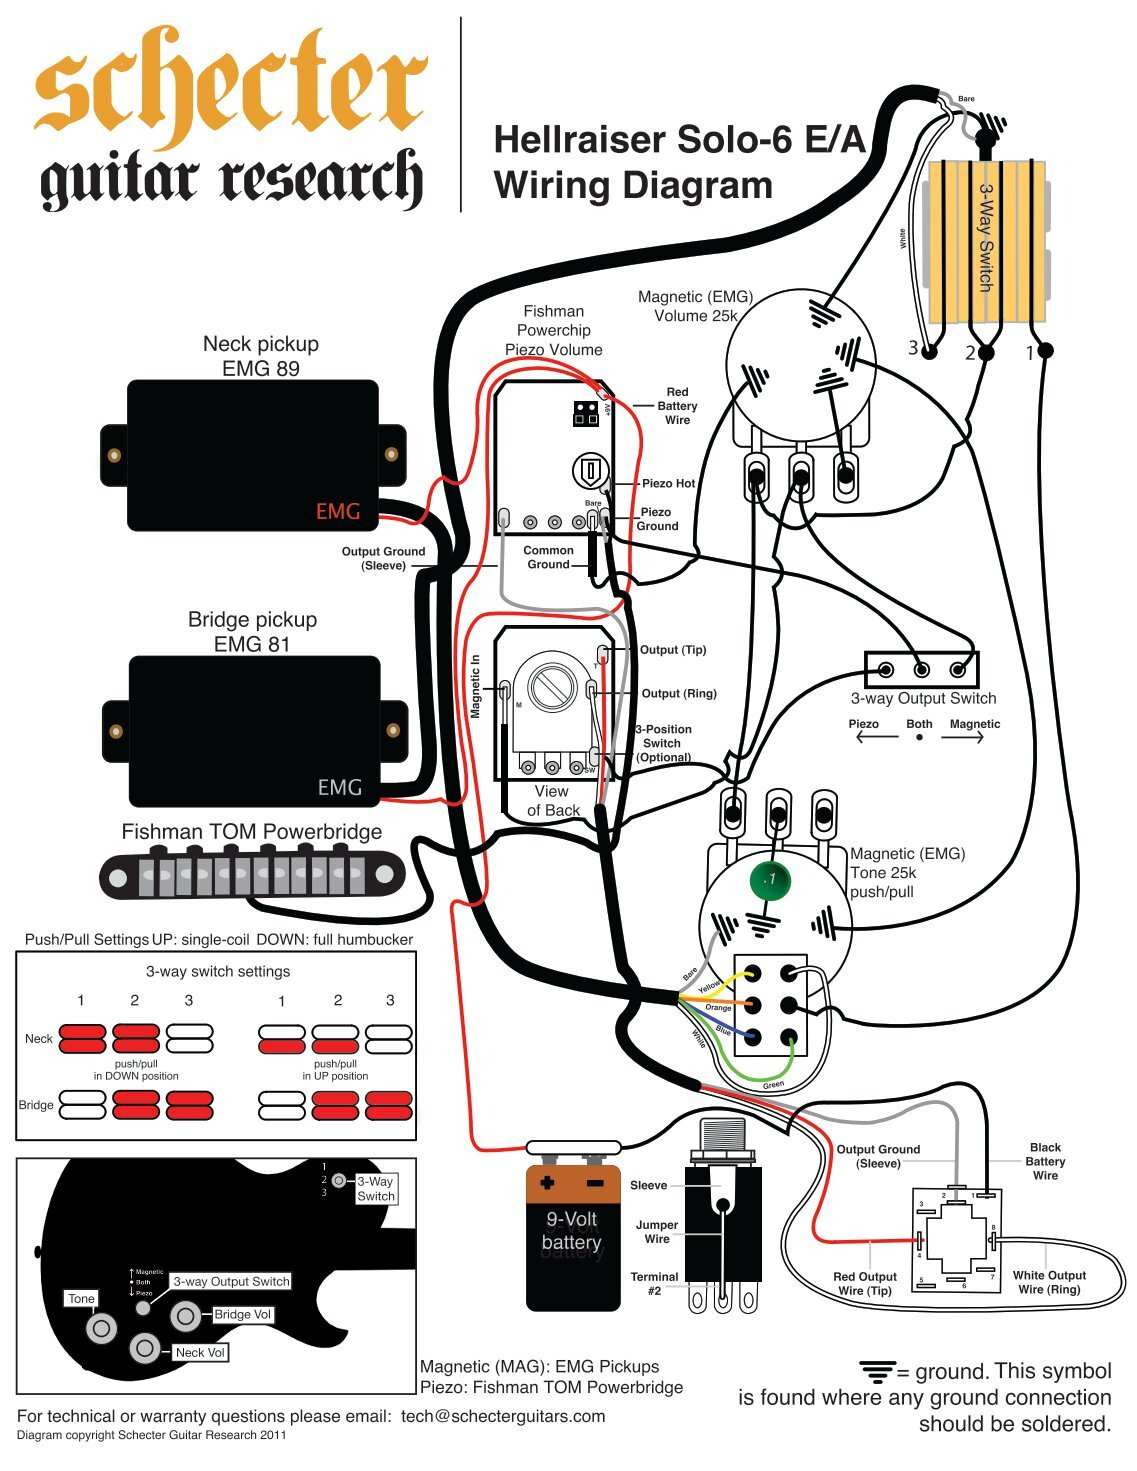 hellraiser solo 6 wiring diagram schecter guitars?resize\\\\\\\\\\\=665%2C860\\\\\\\\\\\&ssl\\\\\\\\\\\=1 outstanding emg solderless wiring diagram contemporary wiring  at creativeand.co